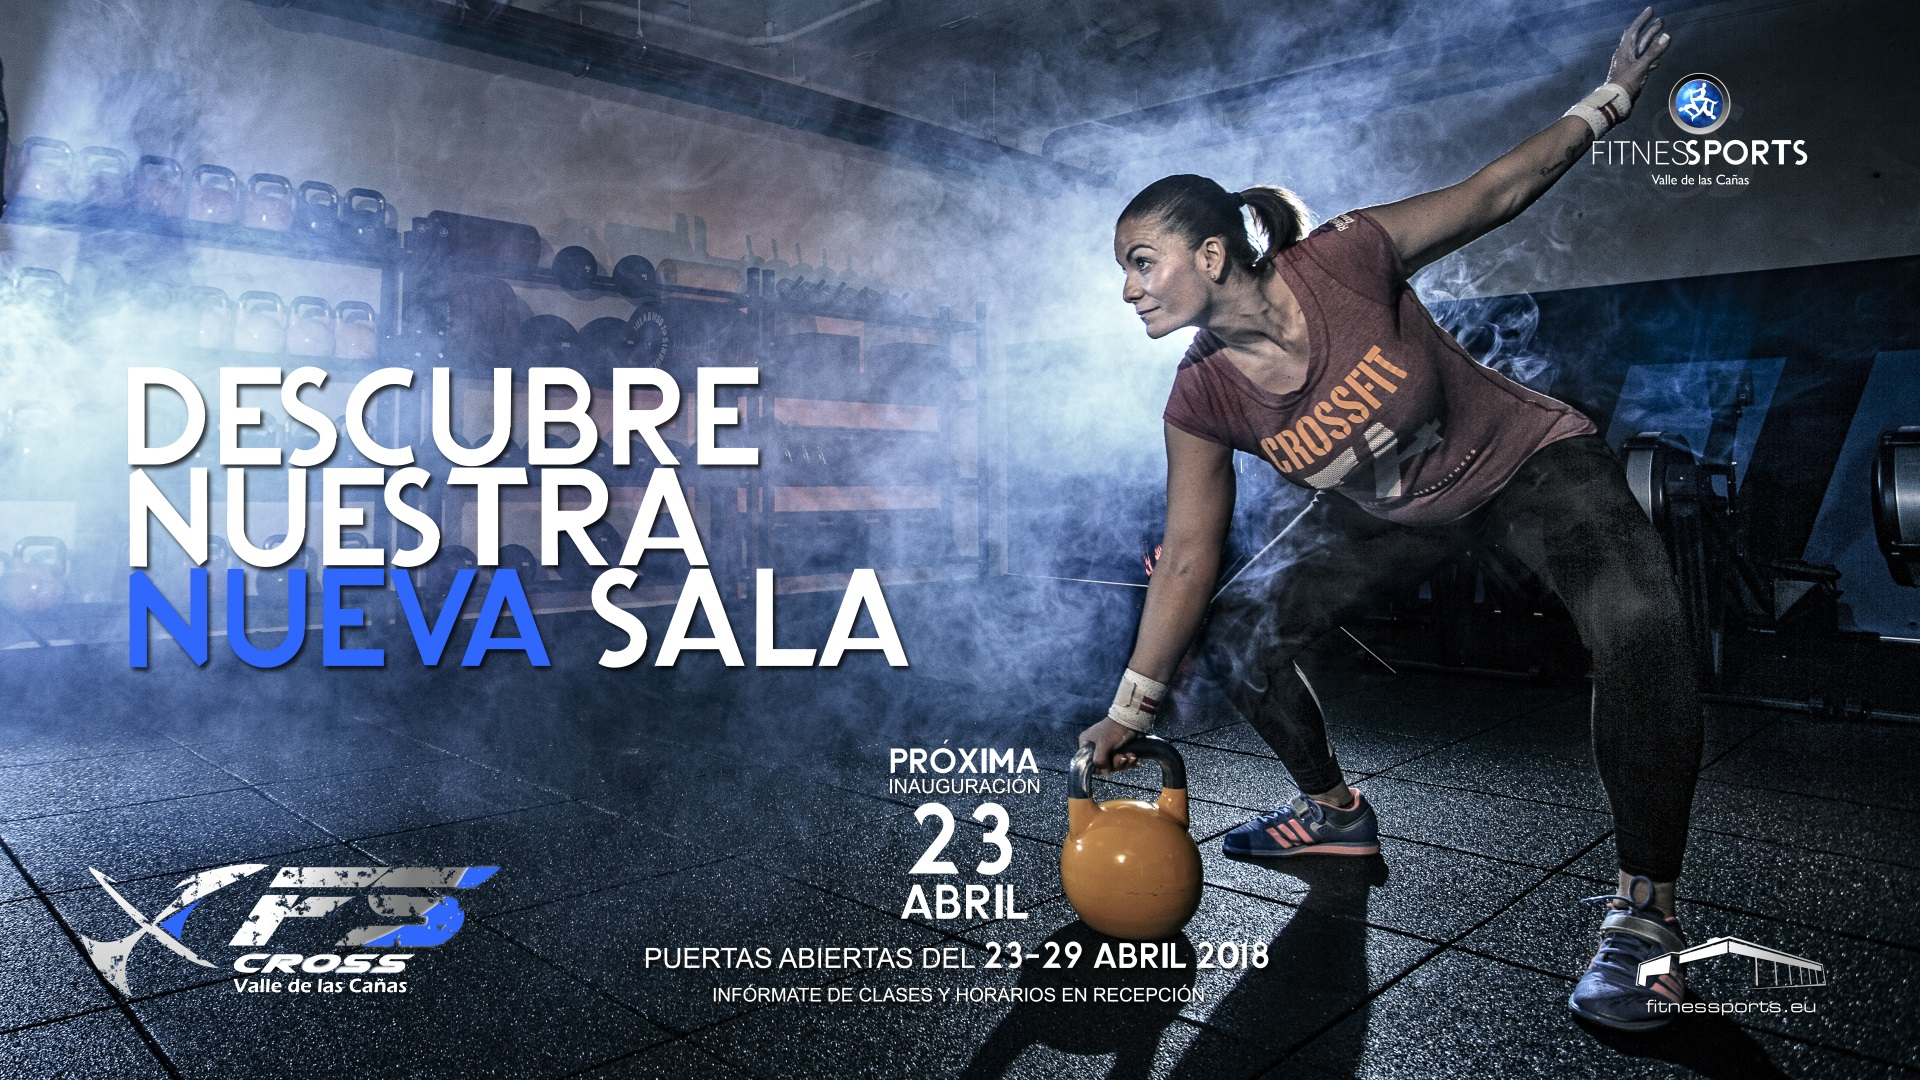 https://perfectpixel.es/wp-content/uploads/2018/04/Nuevo-box-Crossfit-FS-Cross-Training-Valle-de-las-Ca%C3%B1as-Perfect-Pixel-Publicidad-2.jpg